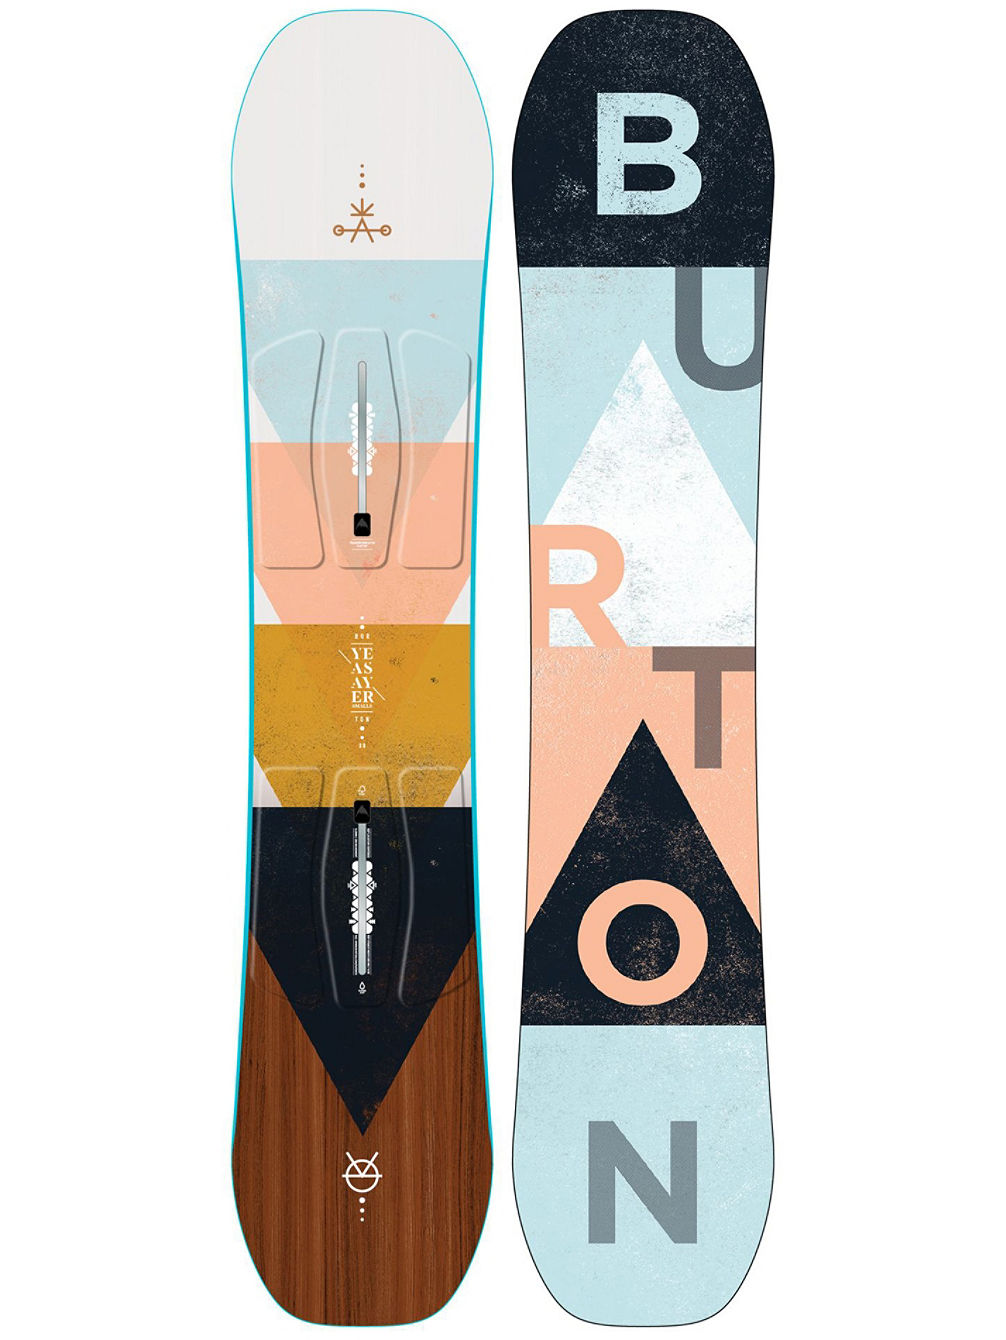 Yeasayer Smalls 138 2020 Snowboard